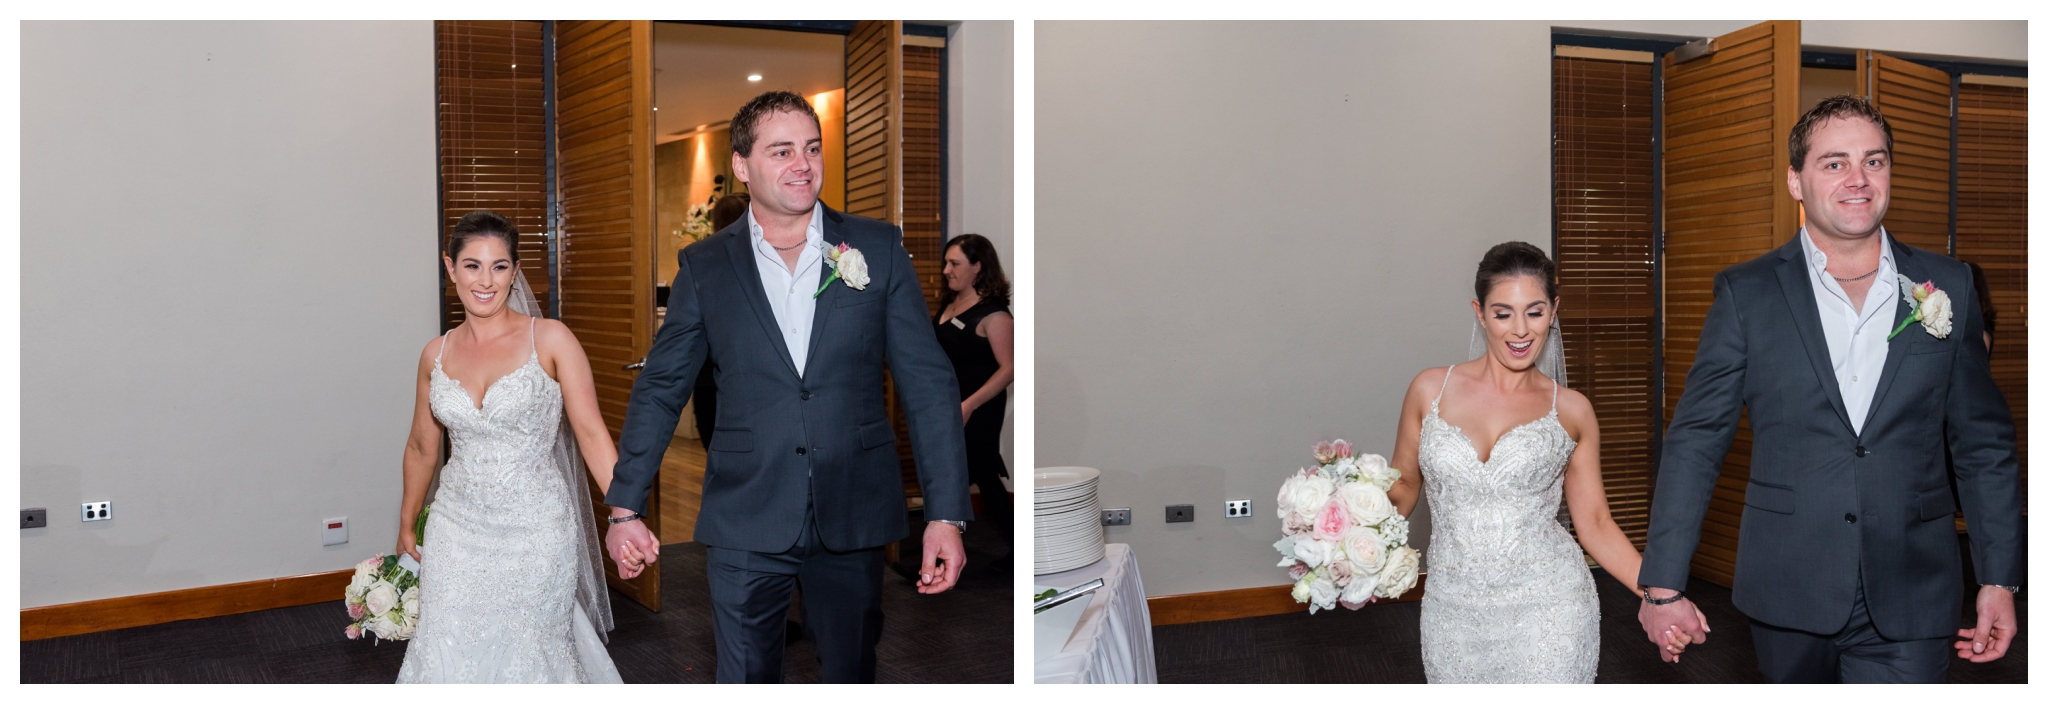 Bride and Groom Mandurah Quay Reception